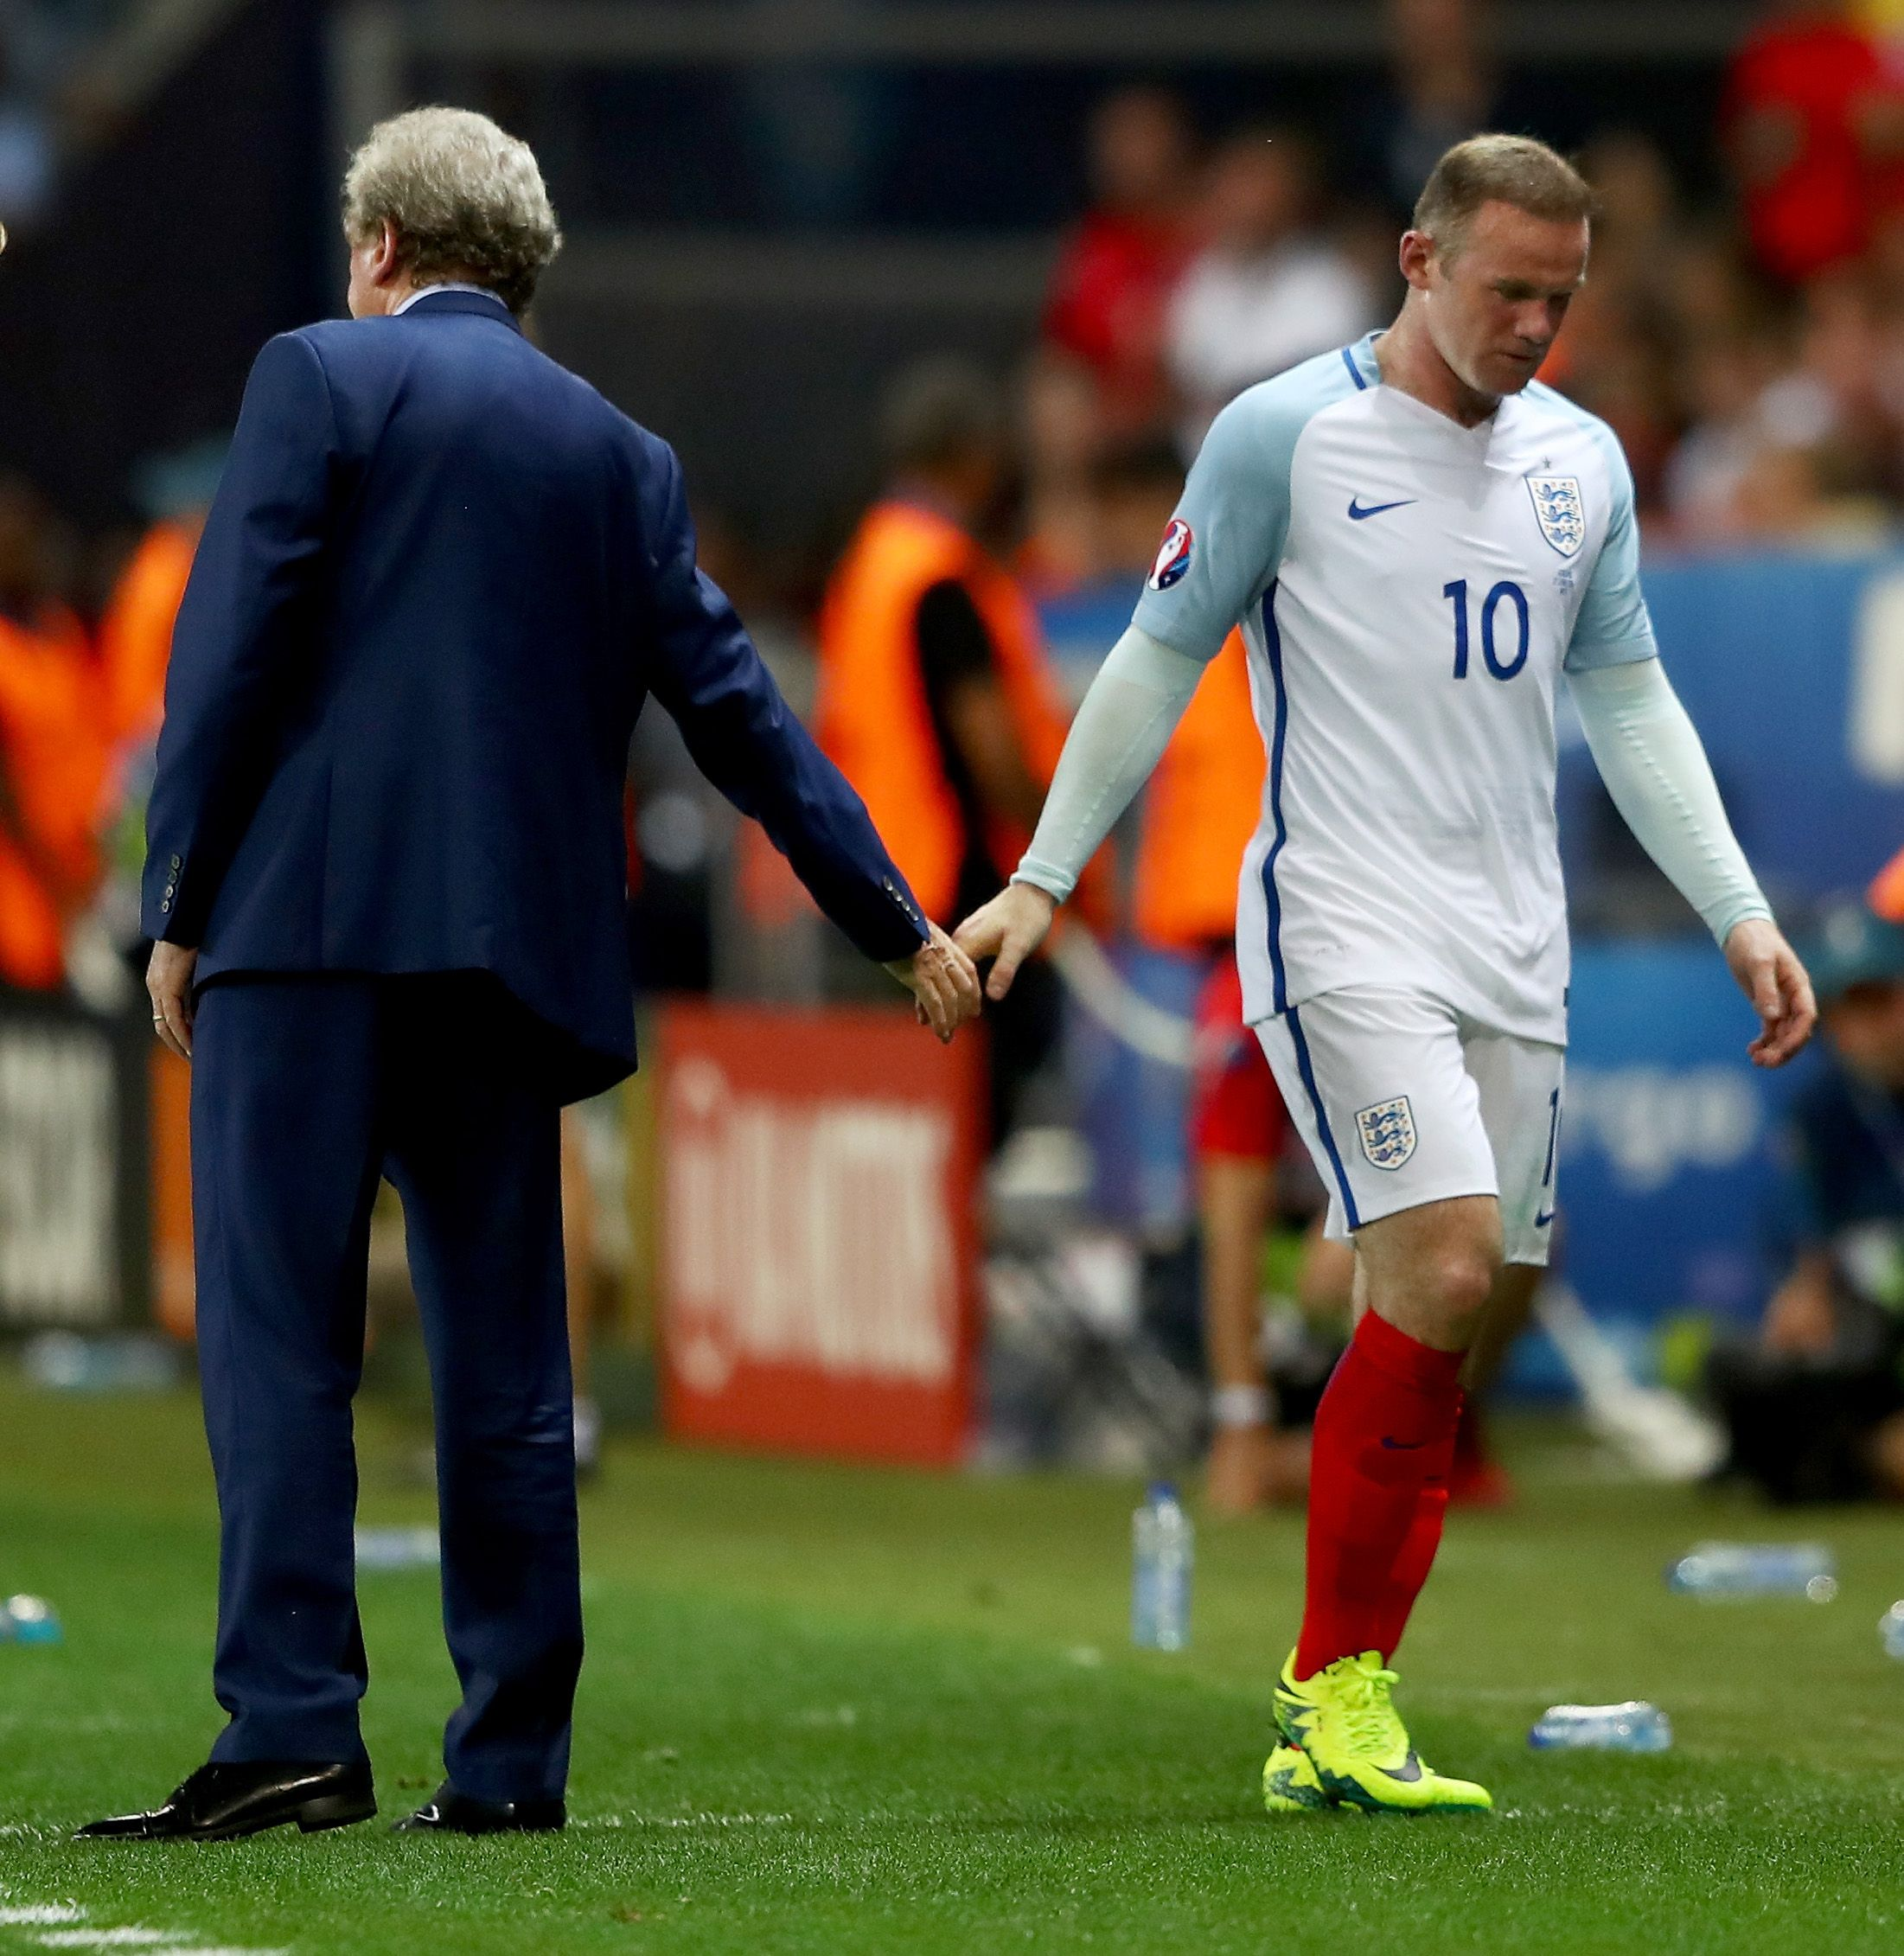 Hodgson and Rooney